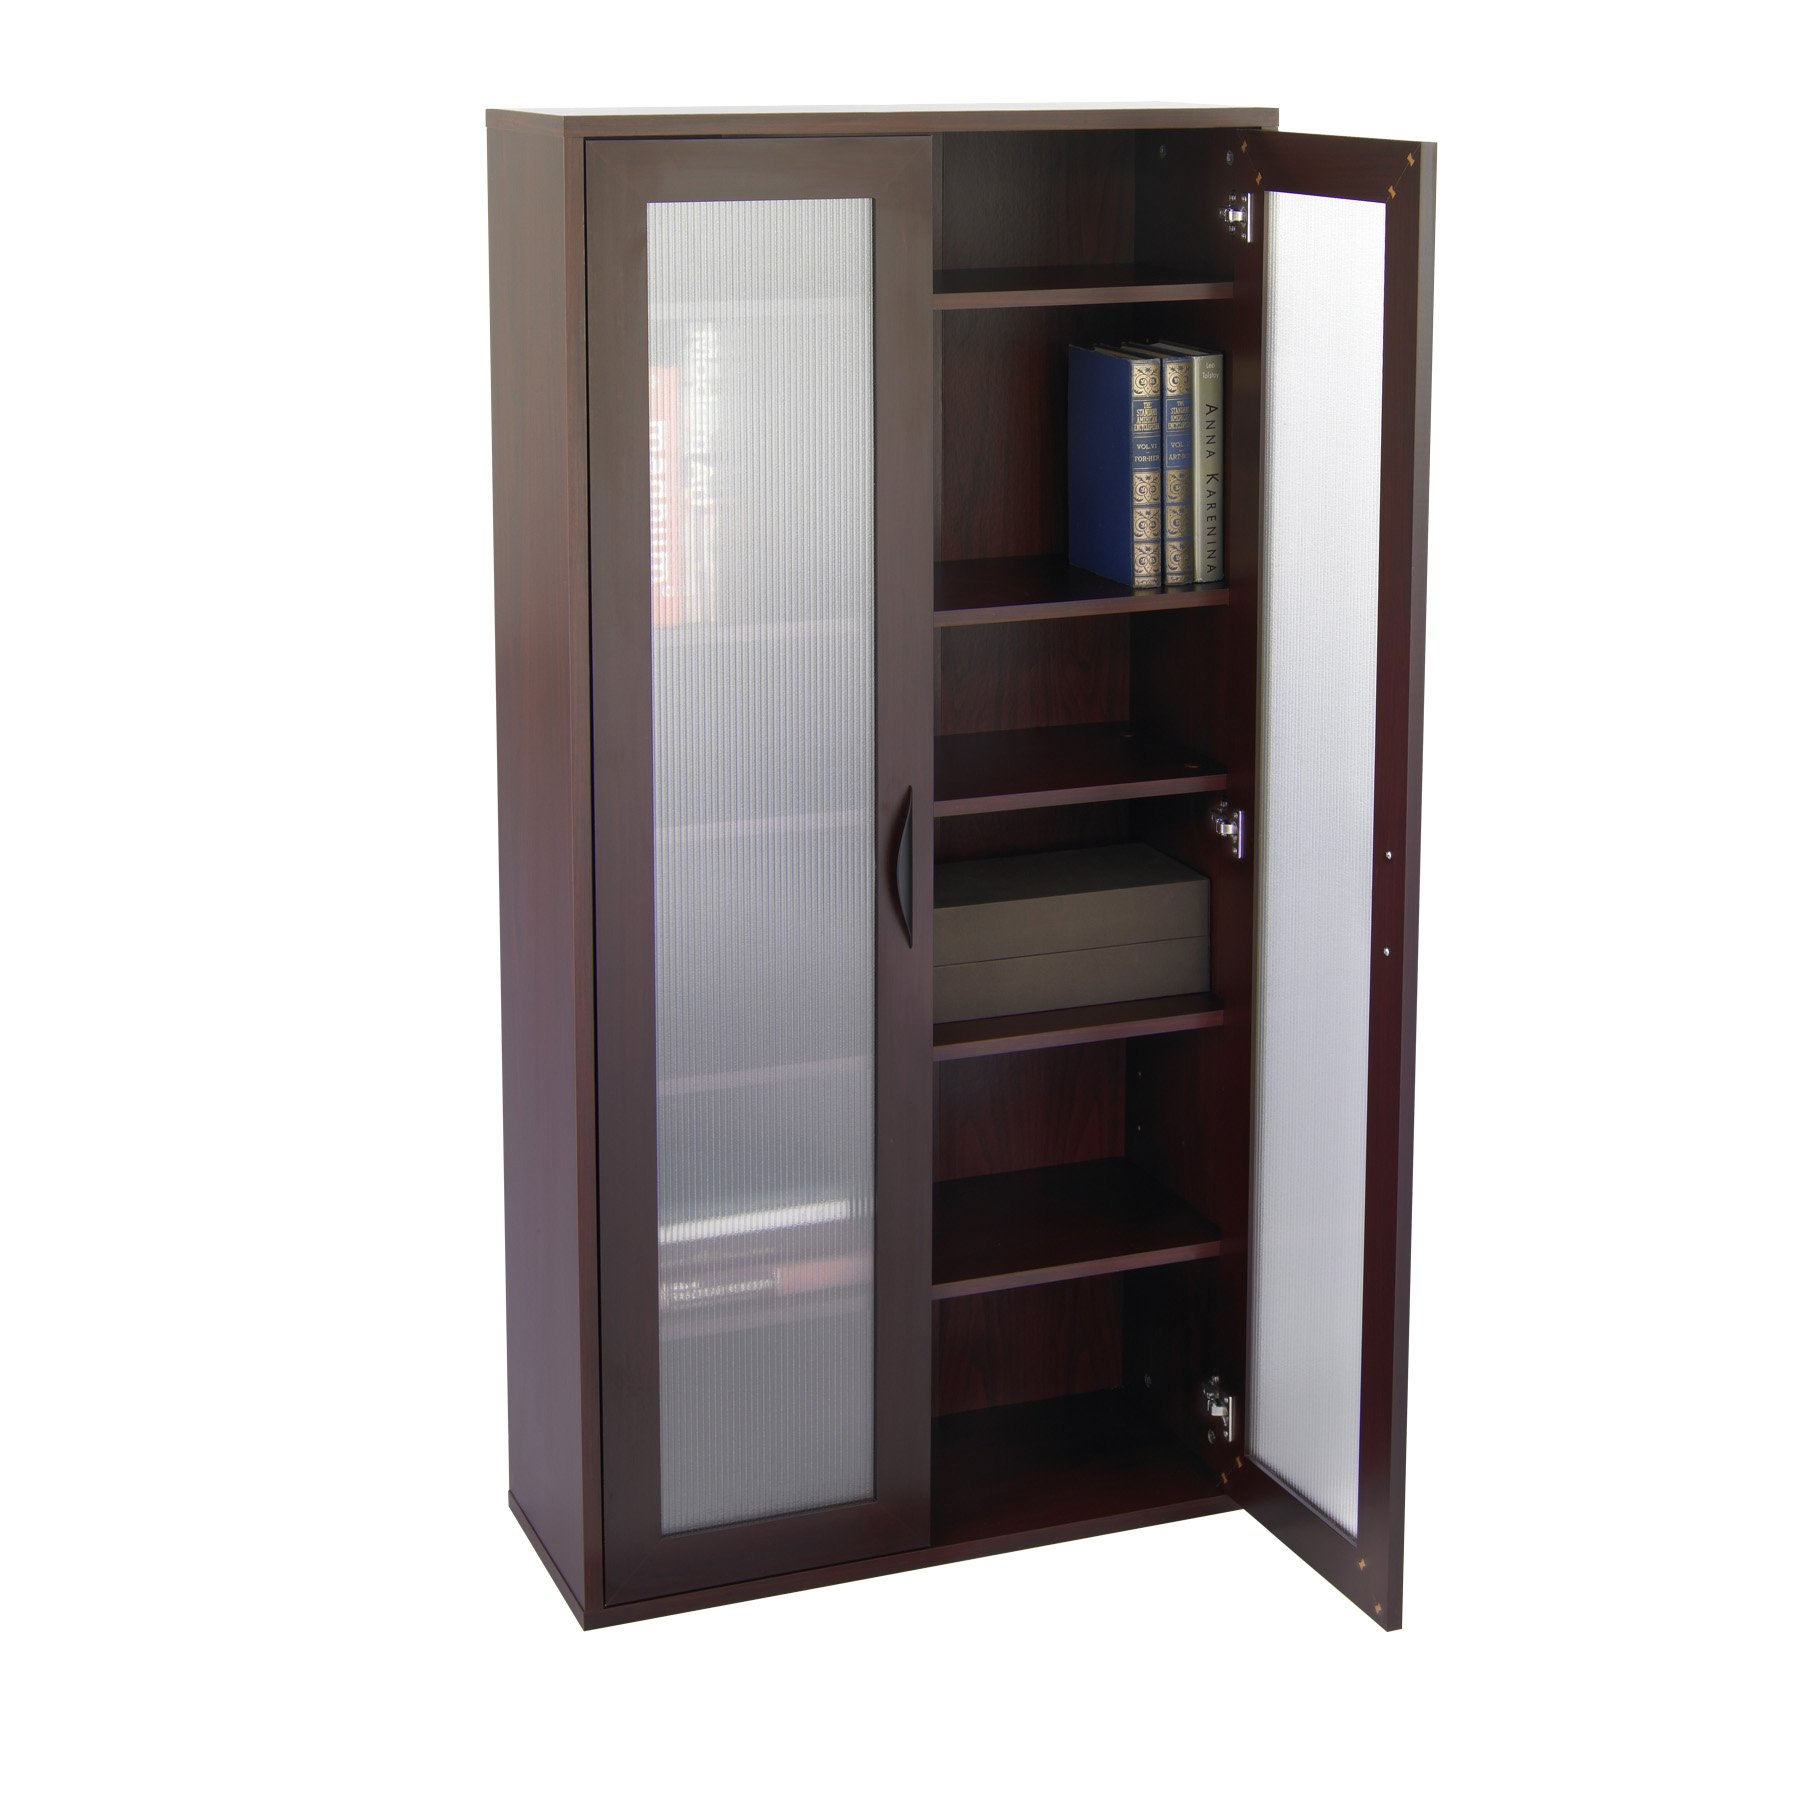 Storage Bookcase With Glass Doors Tall Mahogany Walmart With Regard To Bookcase With Doors (View 12 of 15)